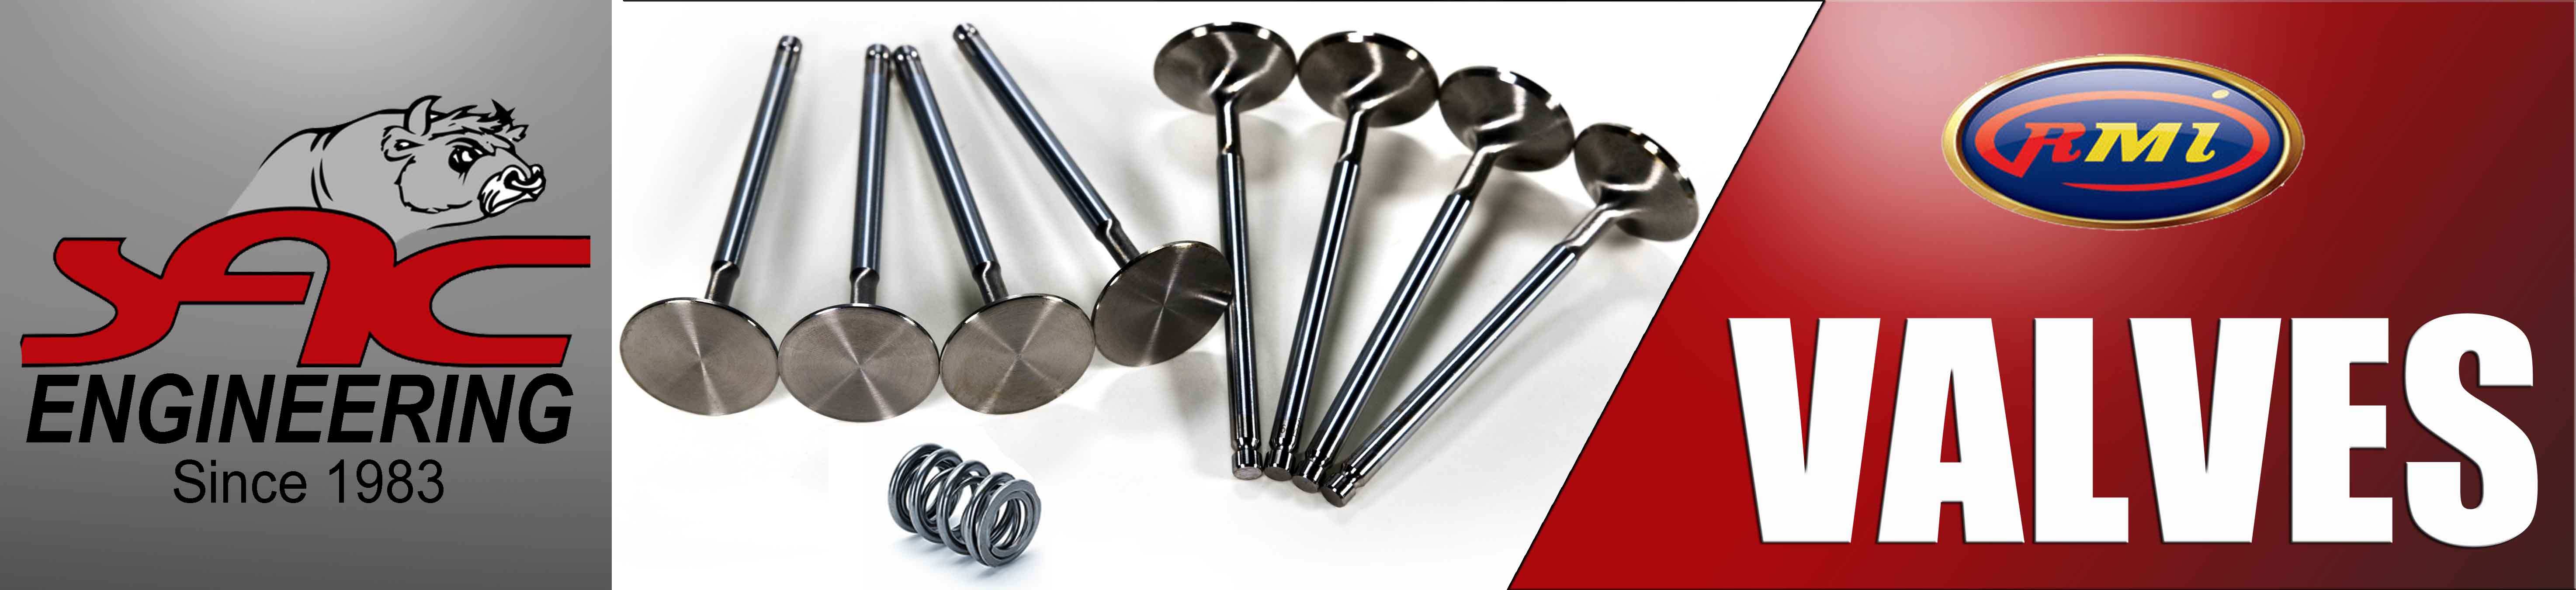 replacement engine valves